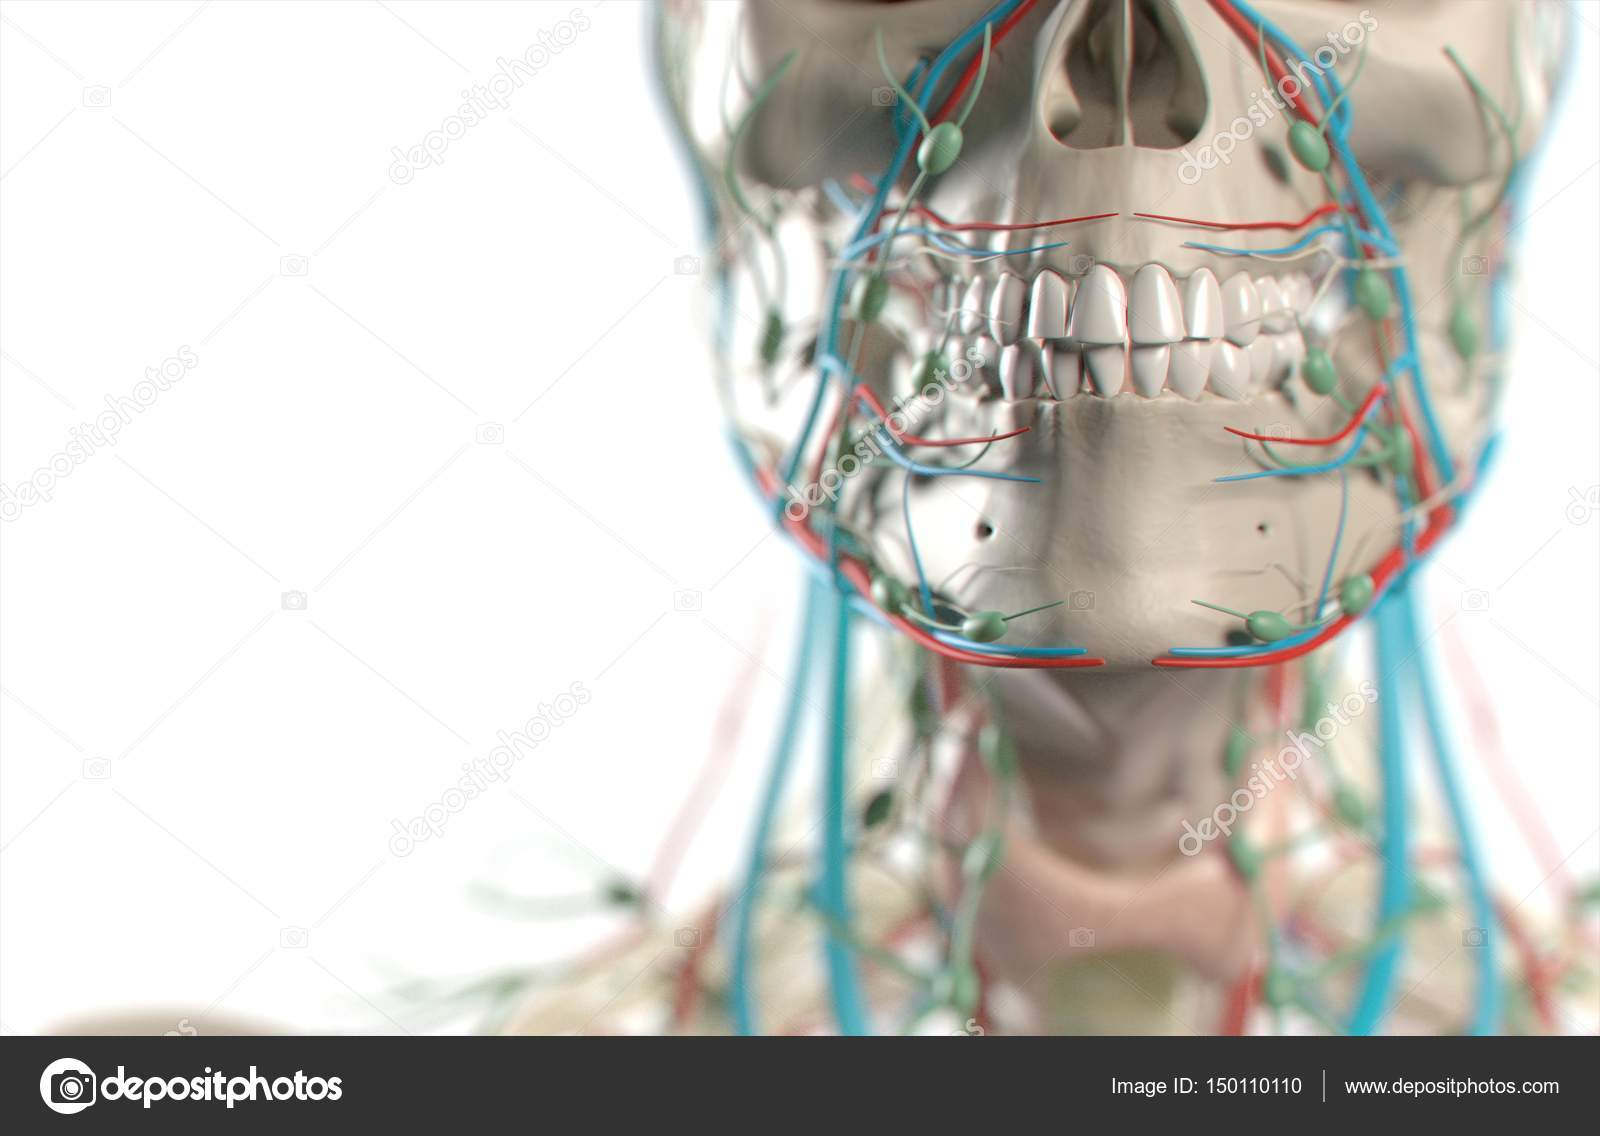 Human teeth anatomy model — Stock Photo © AnatomyInsider #150110110